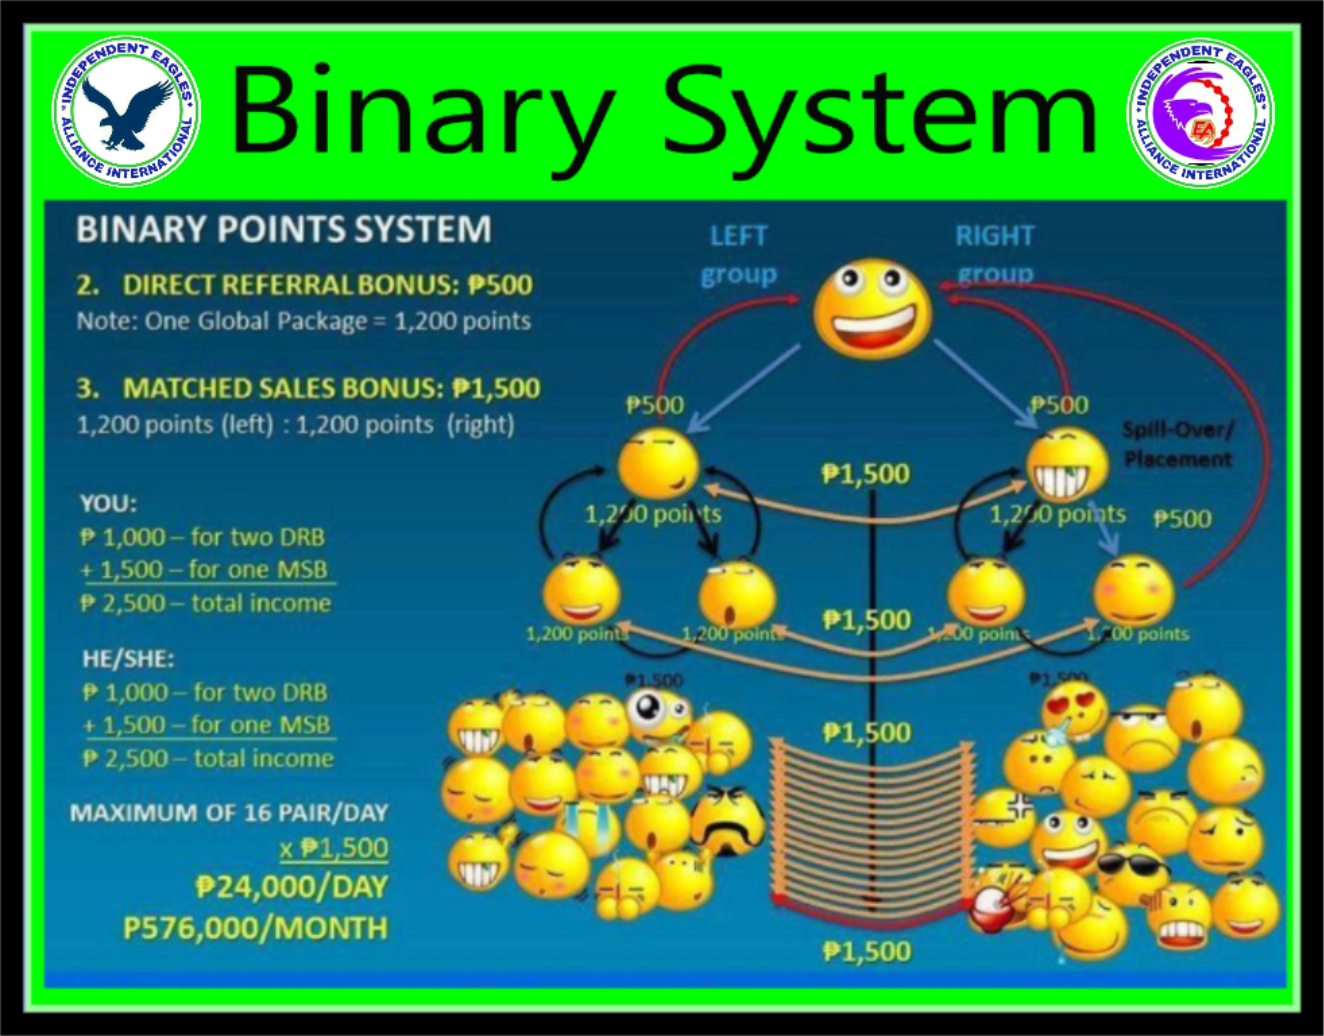 Erlinojr Cuisons Blog The Binary System